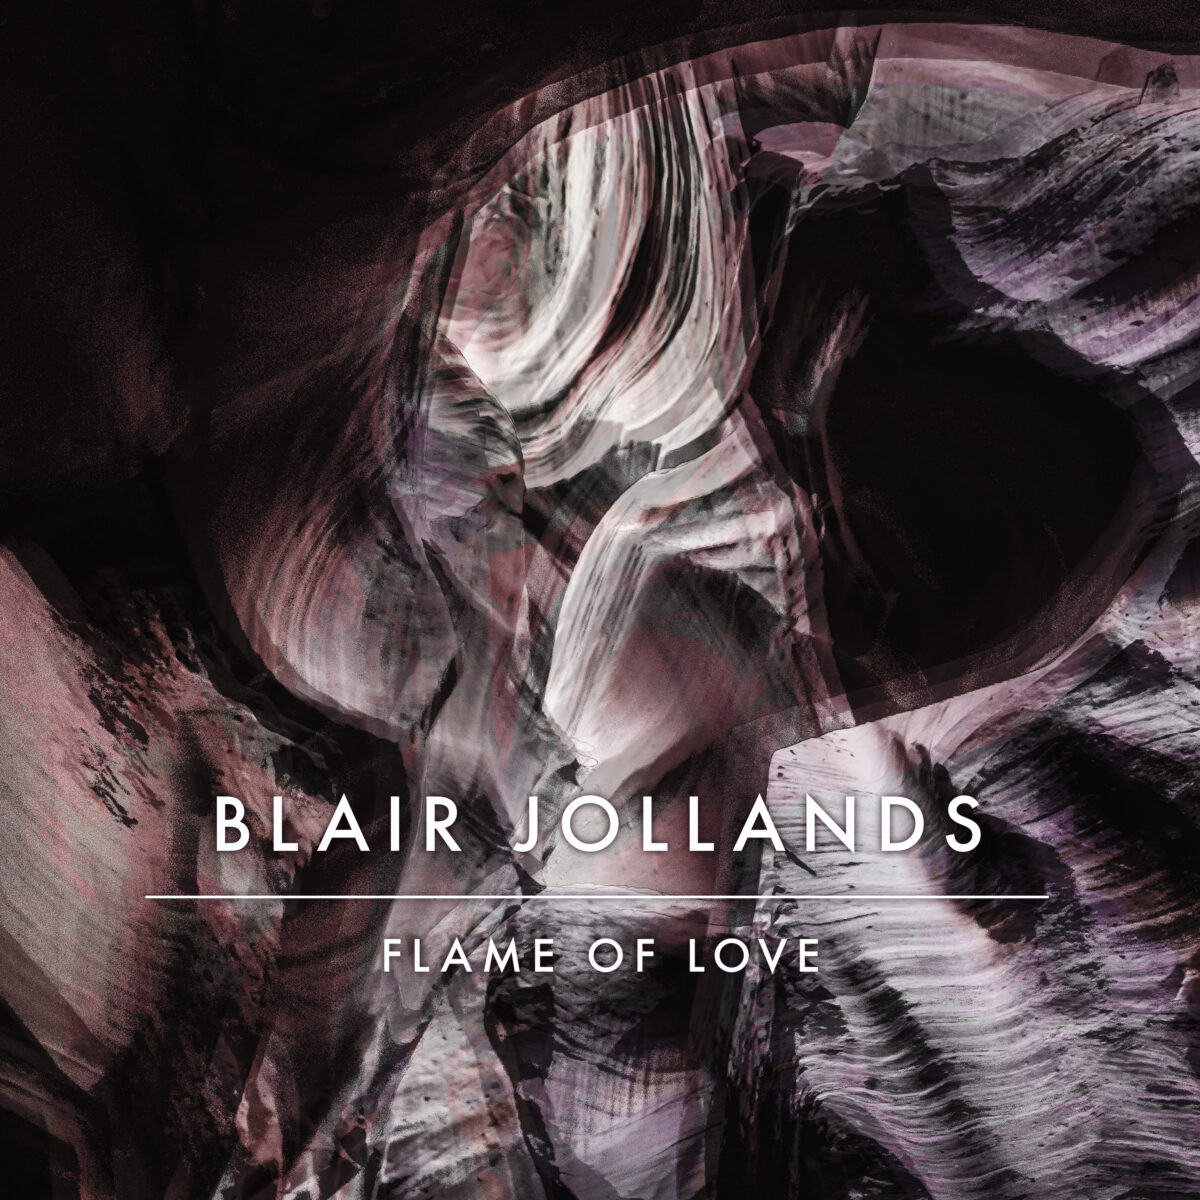 Flame of Love by Blair Jollands – OUT NOW!